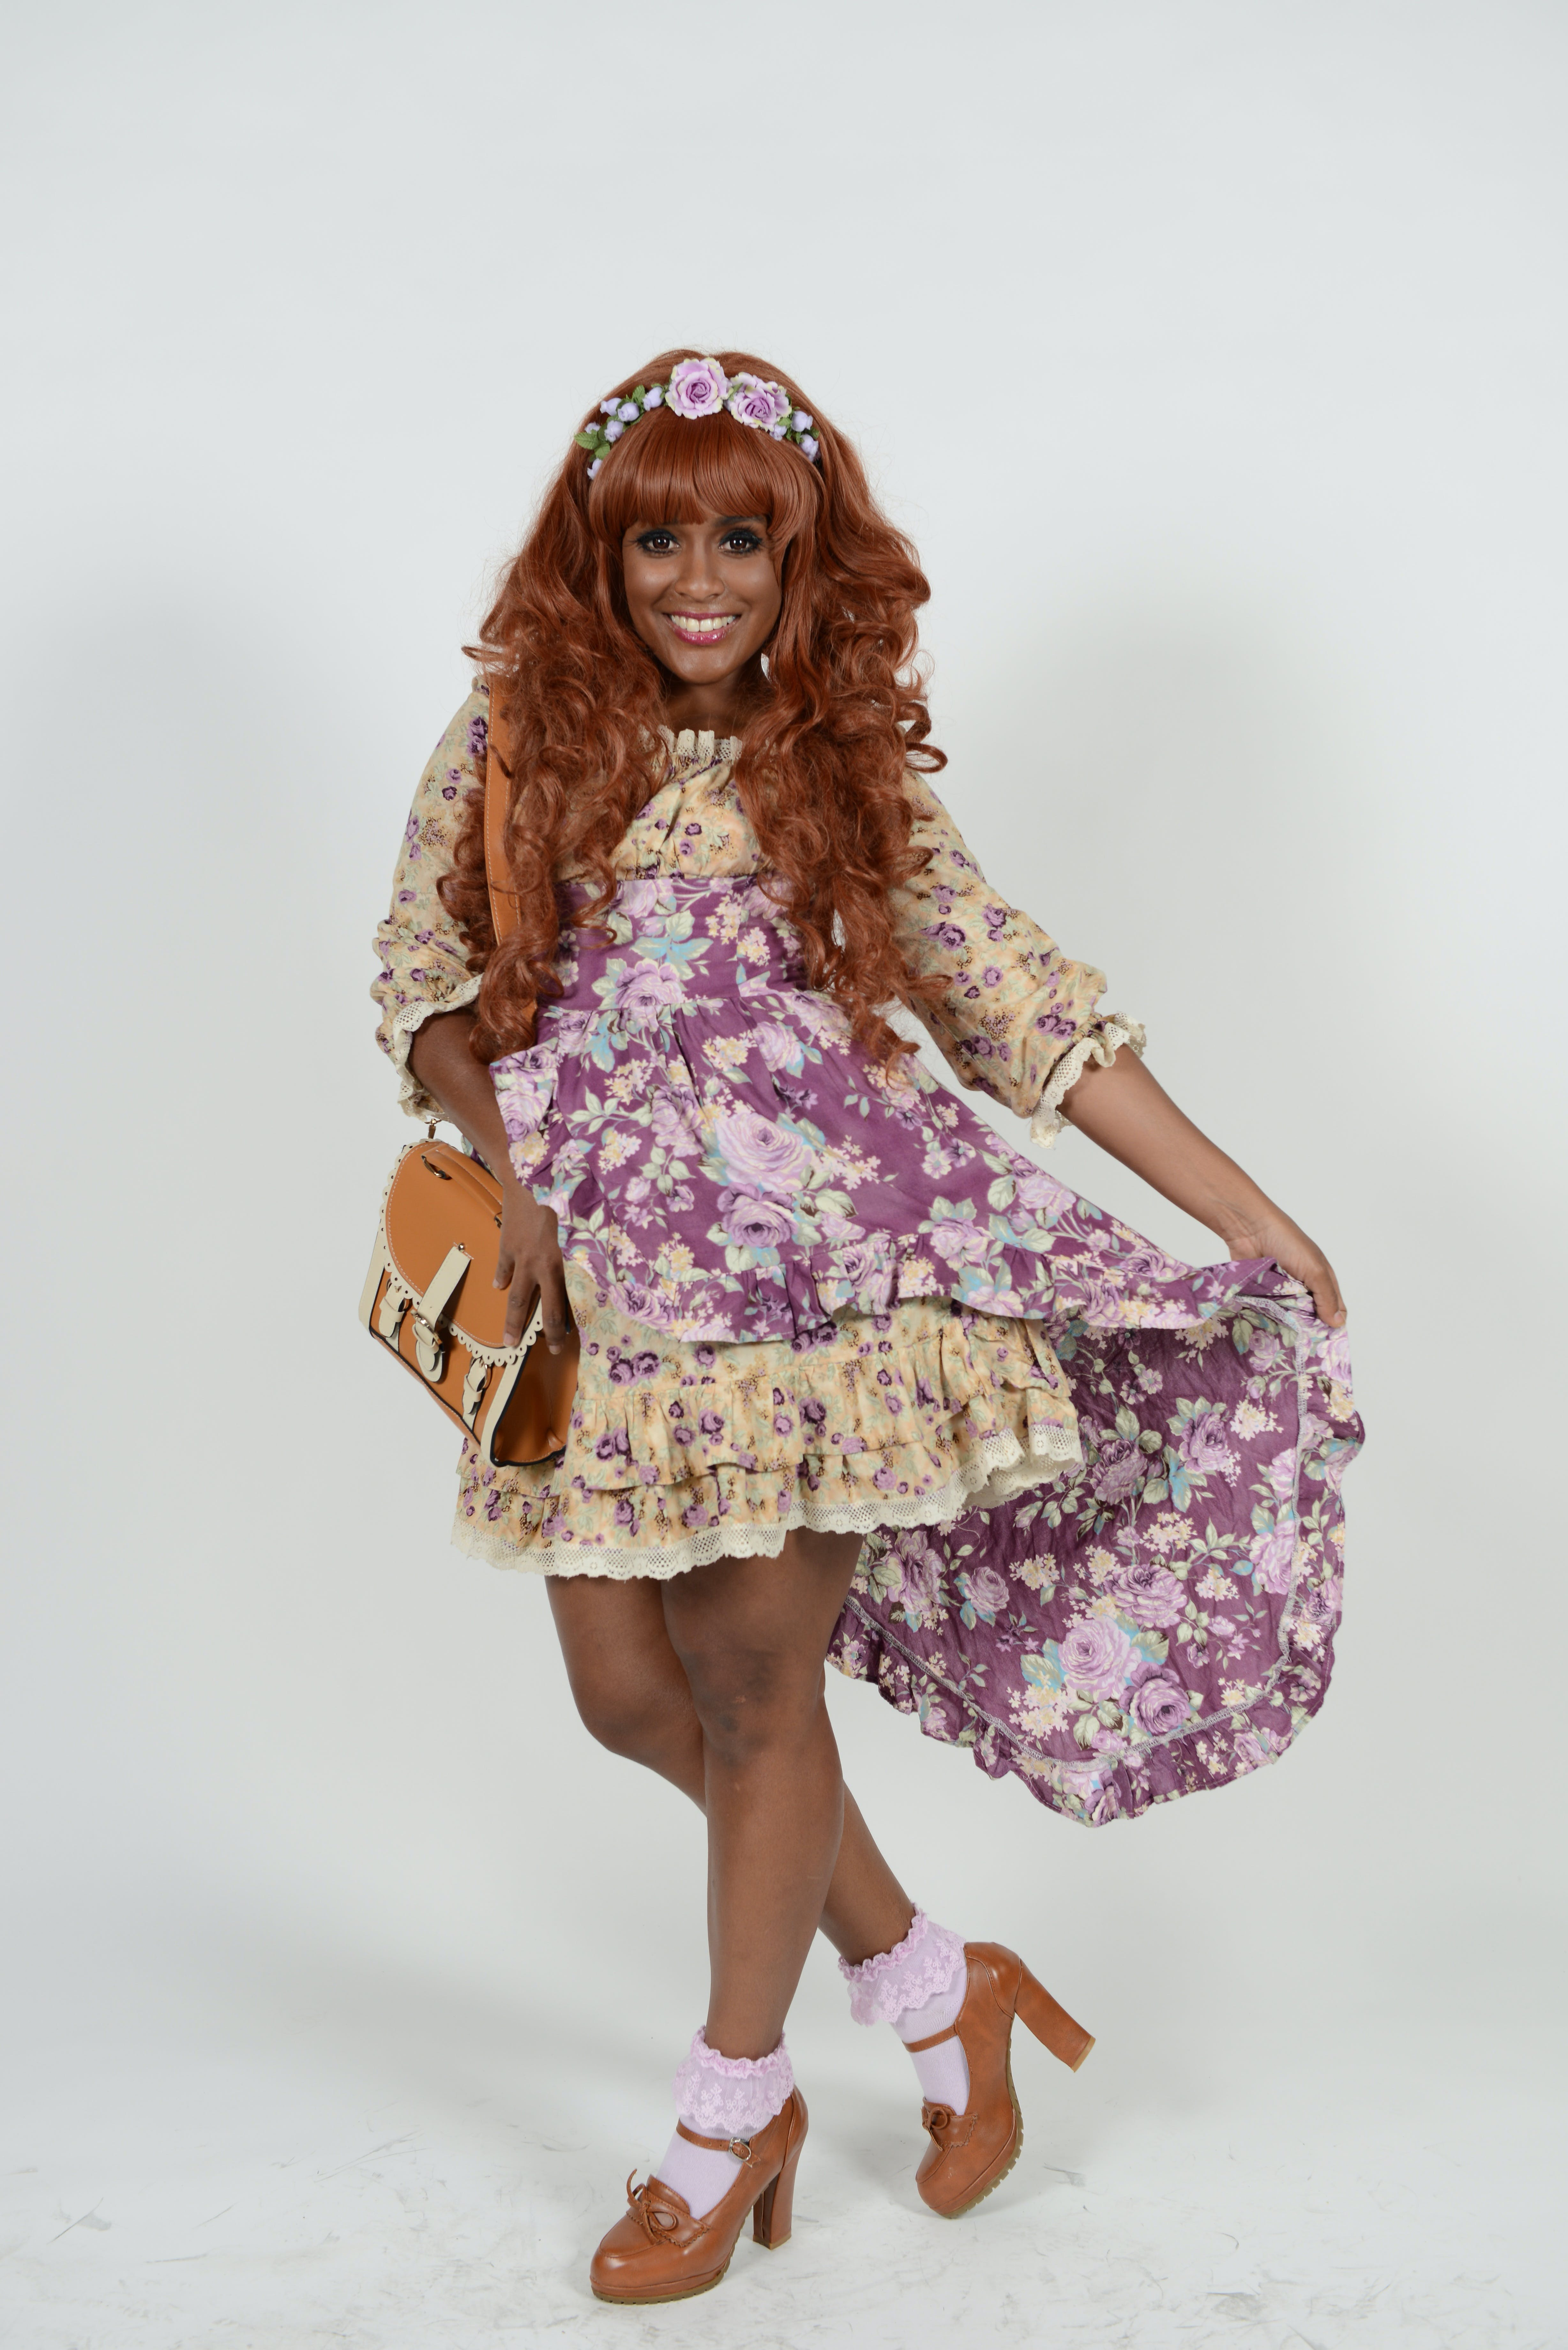 Ashphord Jacoway modeling a design by Doll Delight